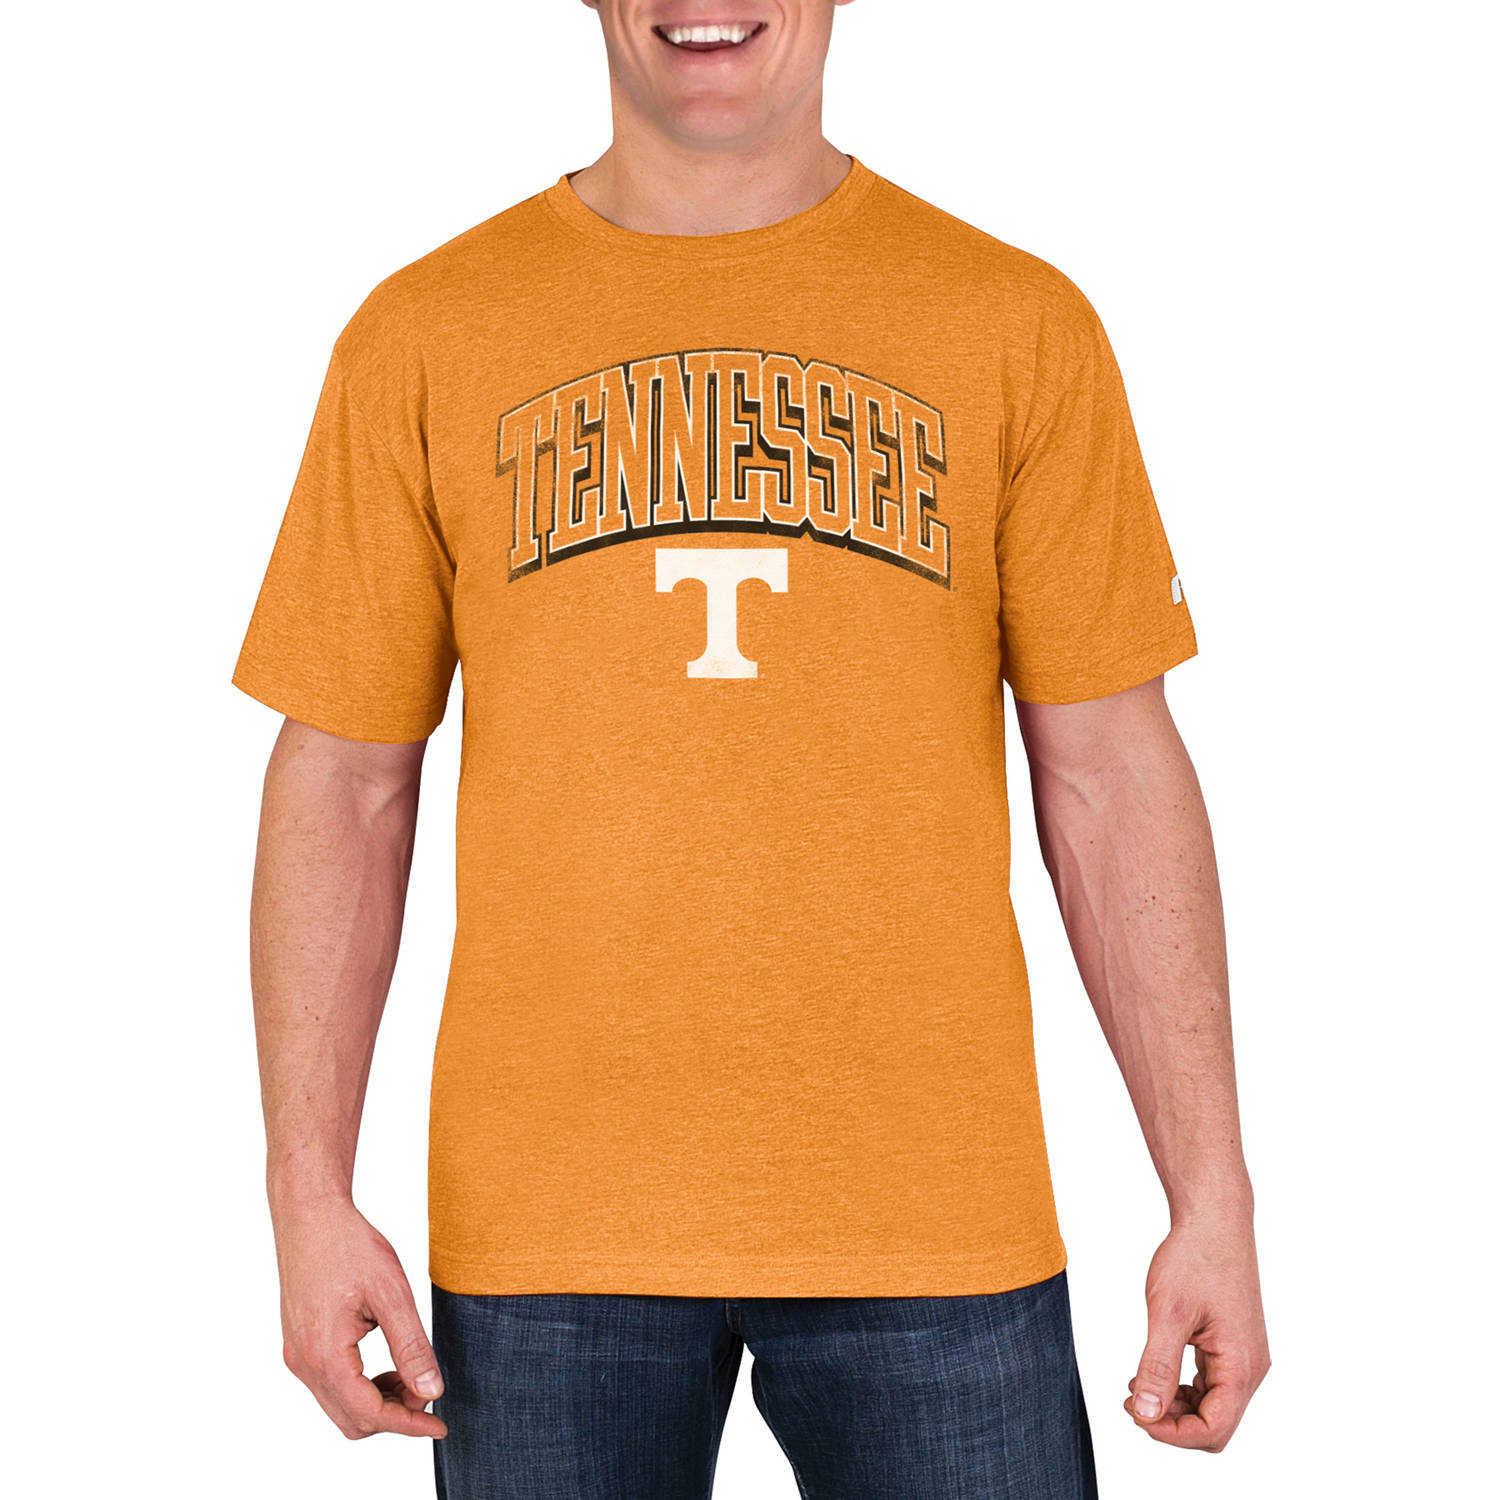 NCAA Tennessee Volunteers Men's Cotton/Poly Blend T-Shirt